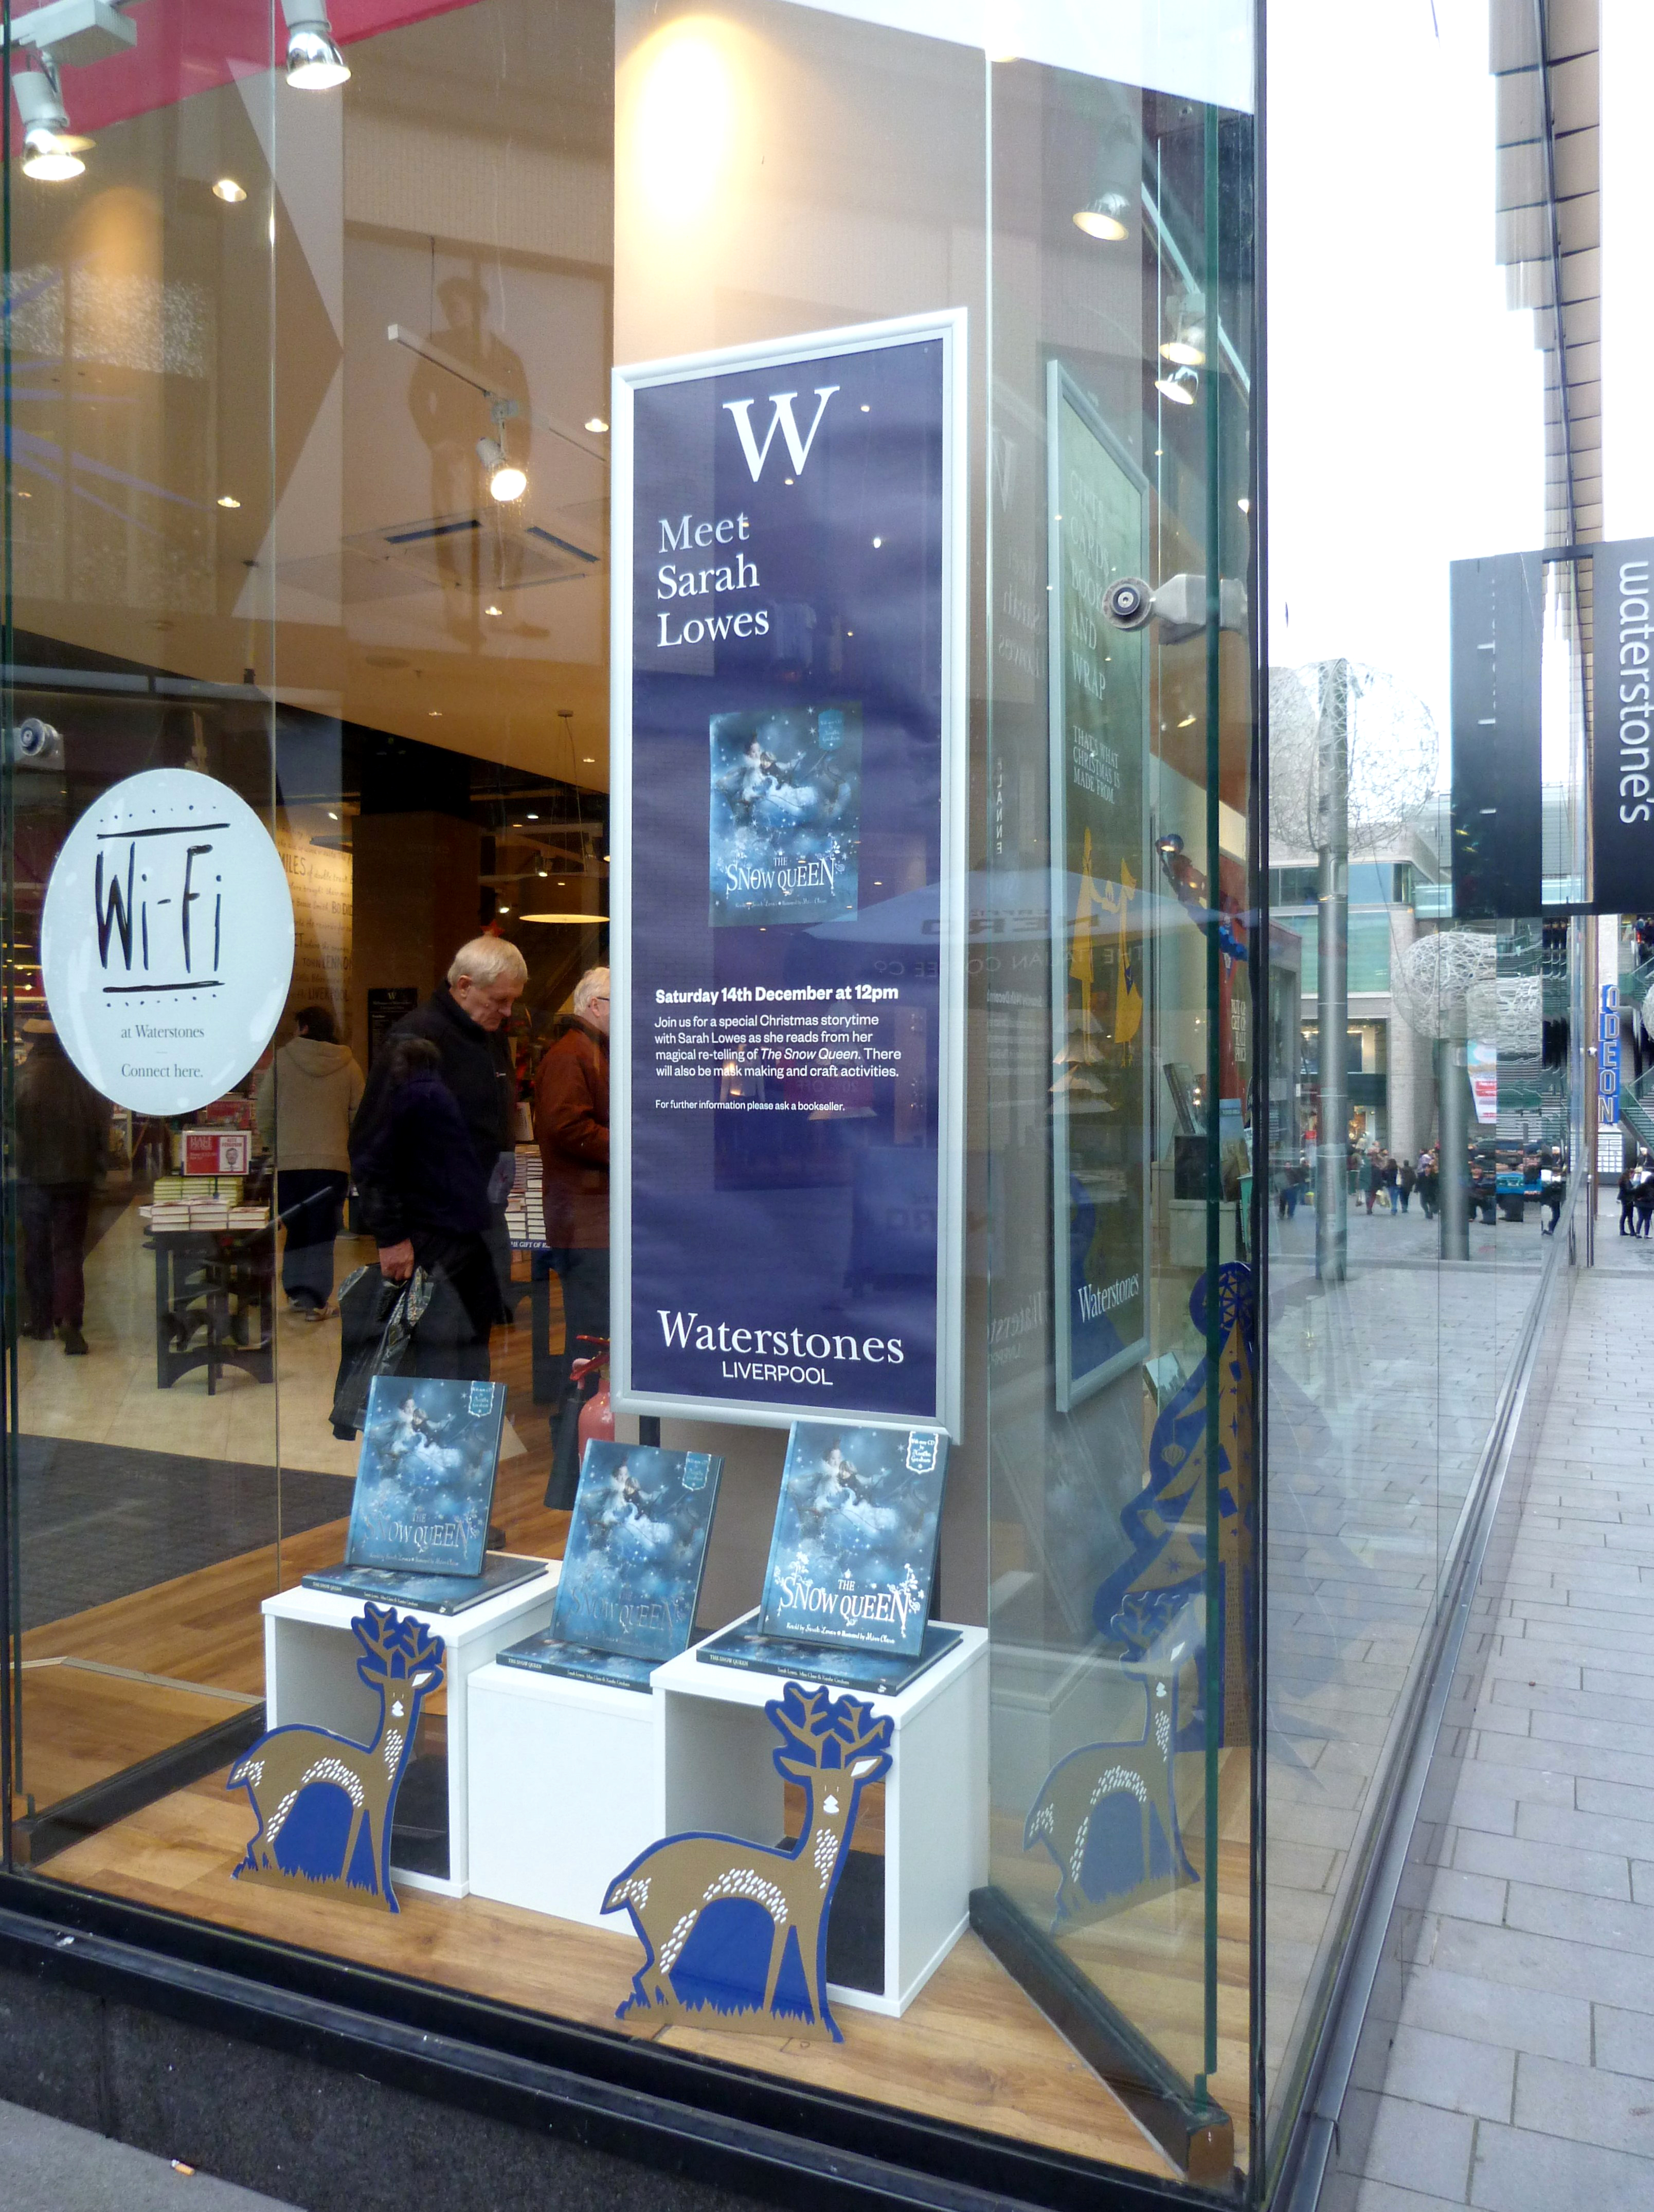 This is Waterstones in Liverpool One on 14th December 2013, the day of Sarah Lowes' book launch